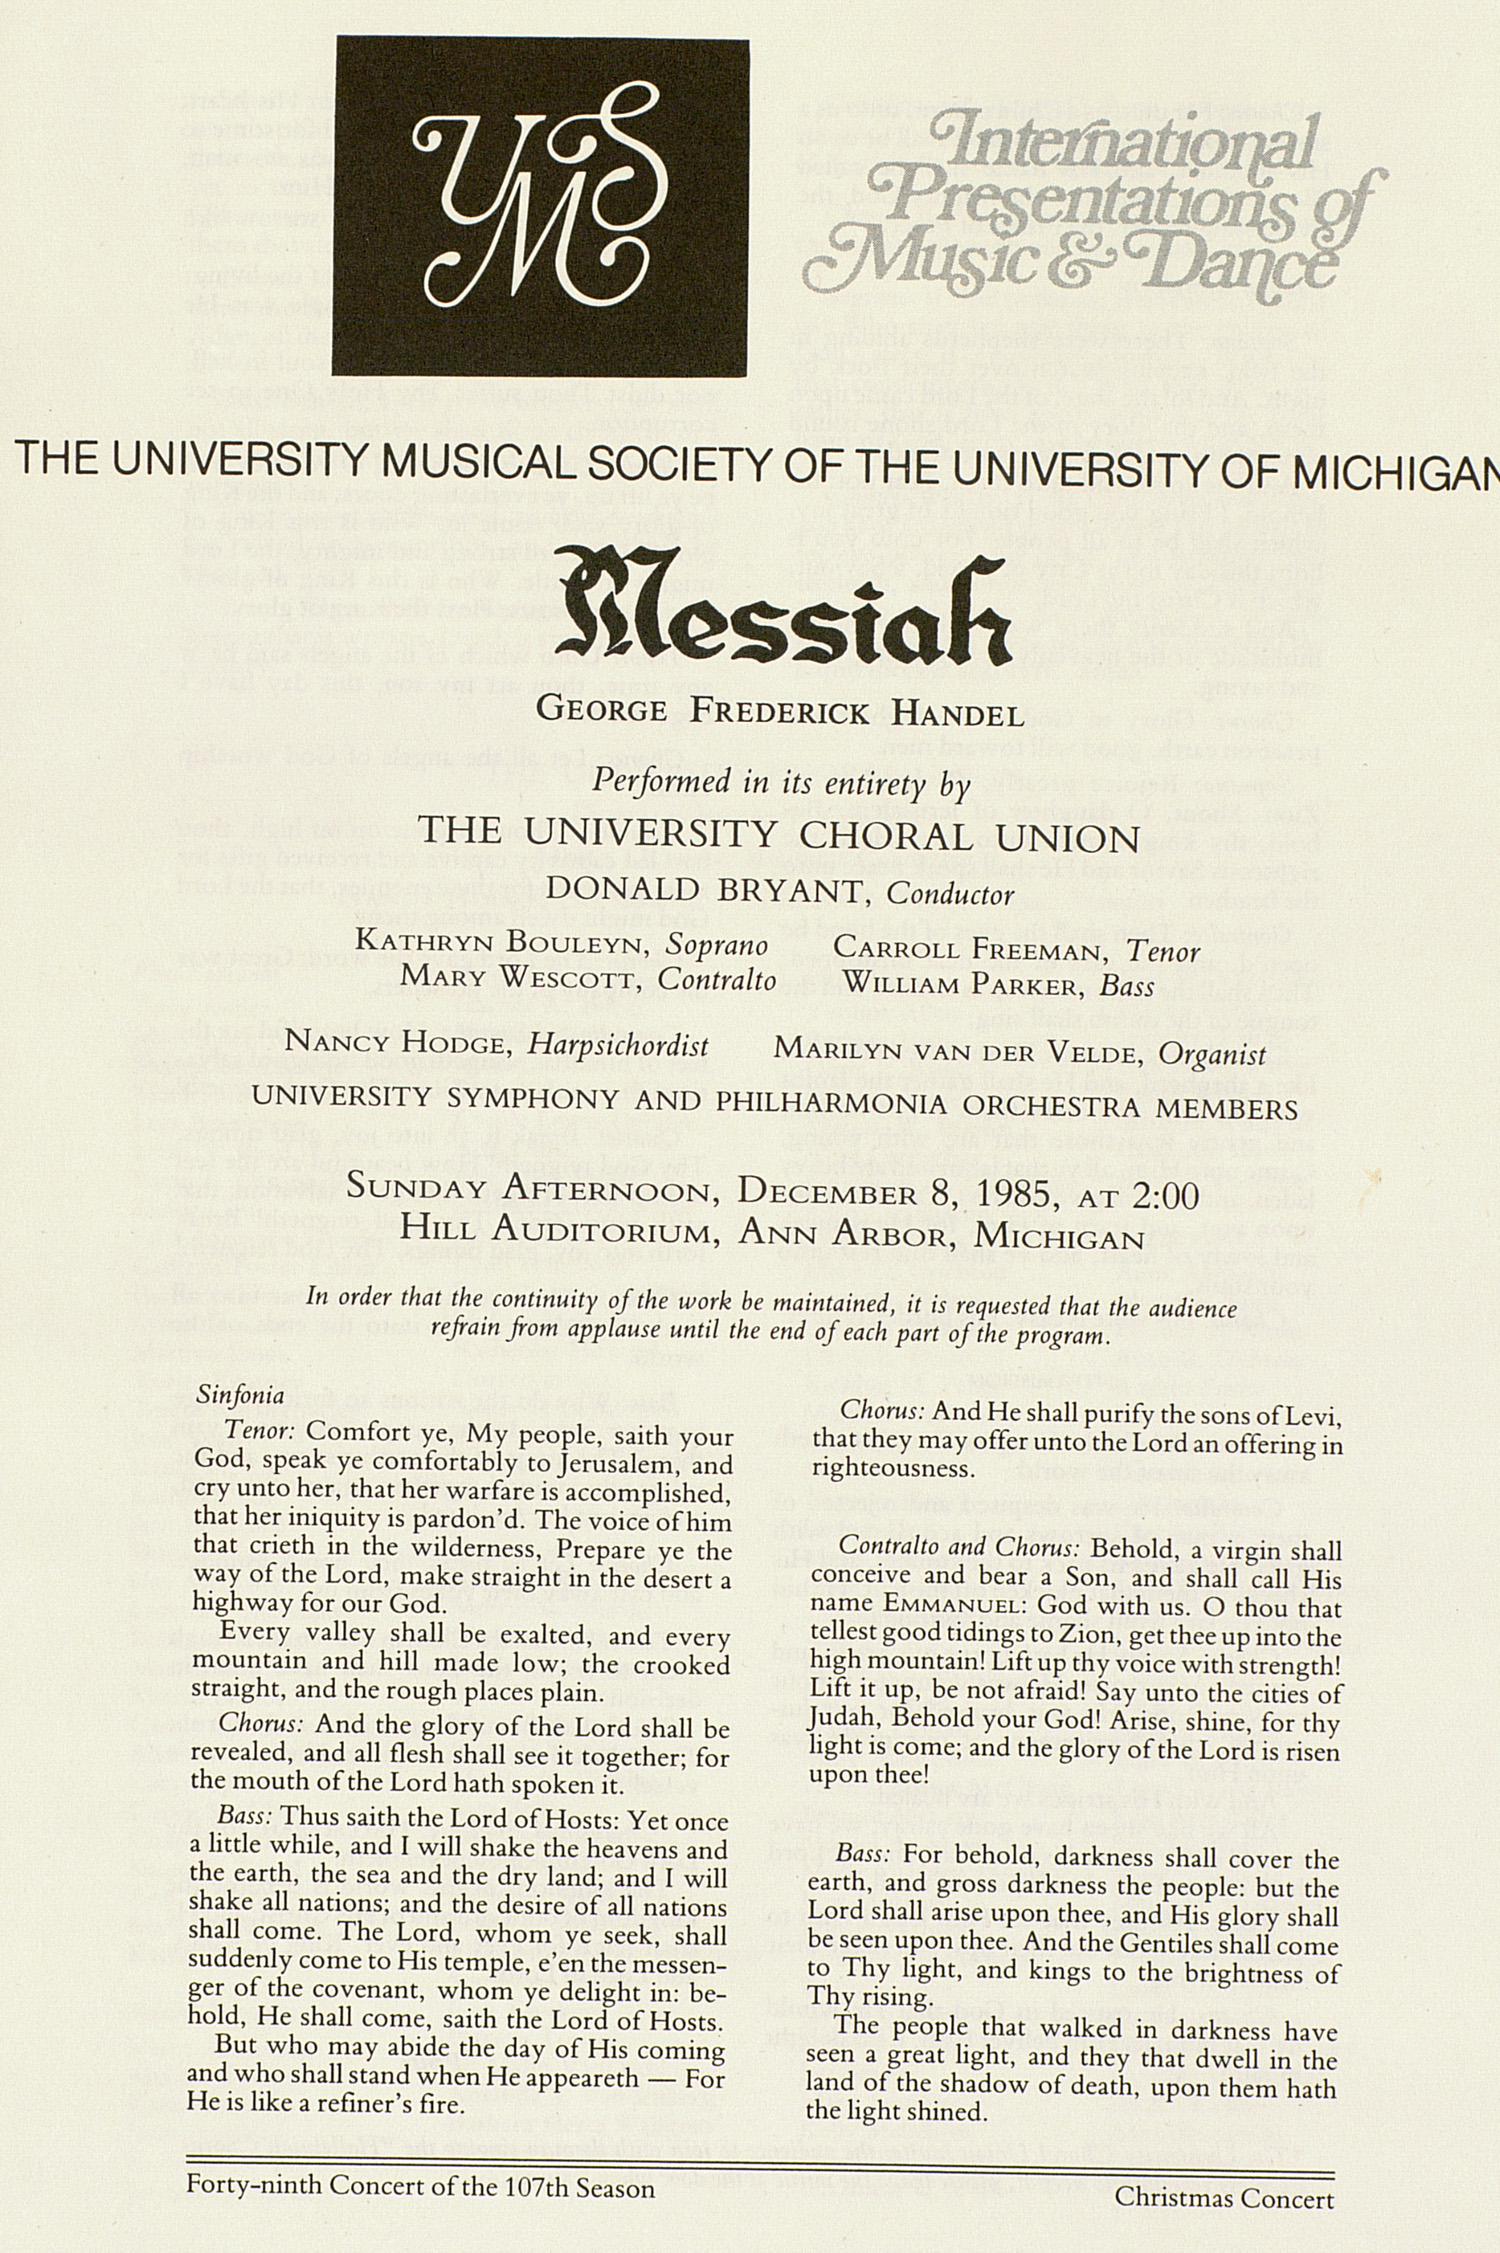 UMS Concert Program, December 8, 1985: Messiah -- George Frederick Handel image